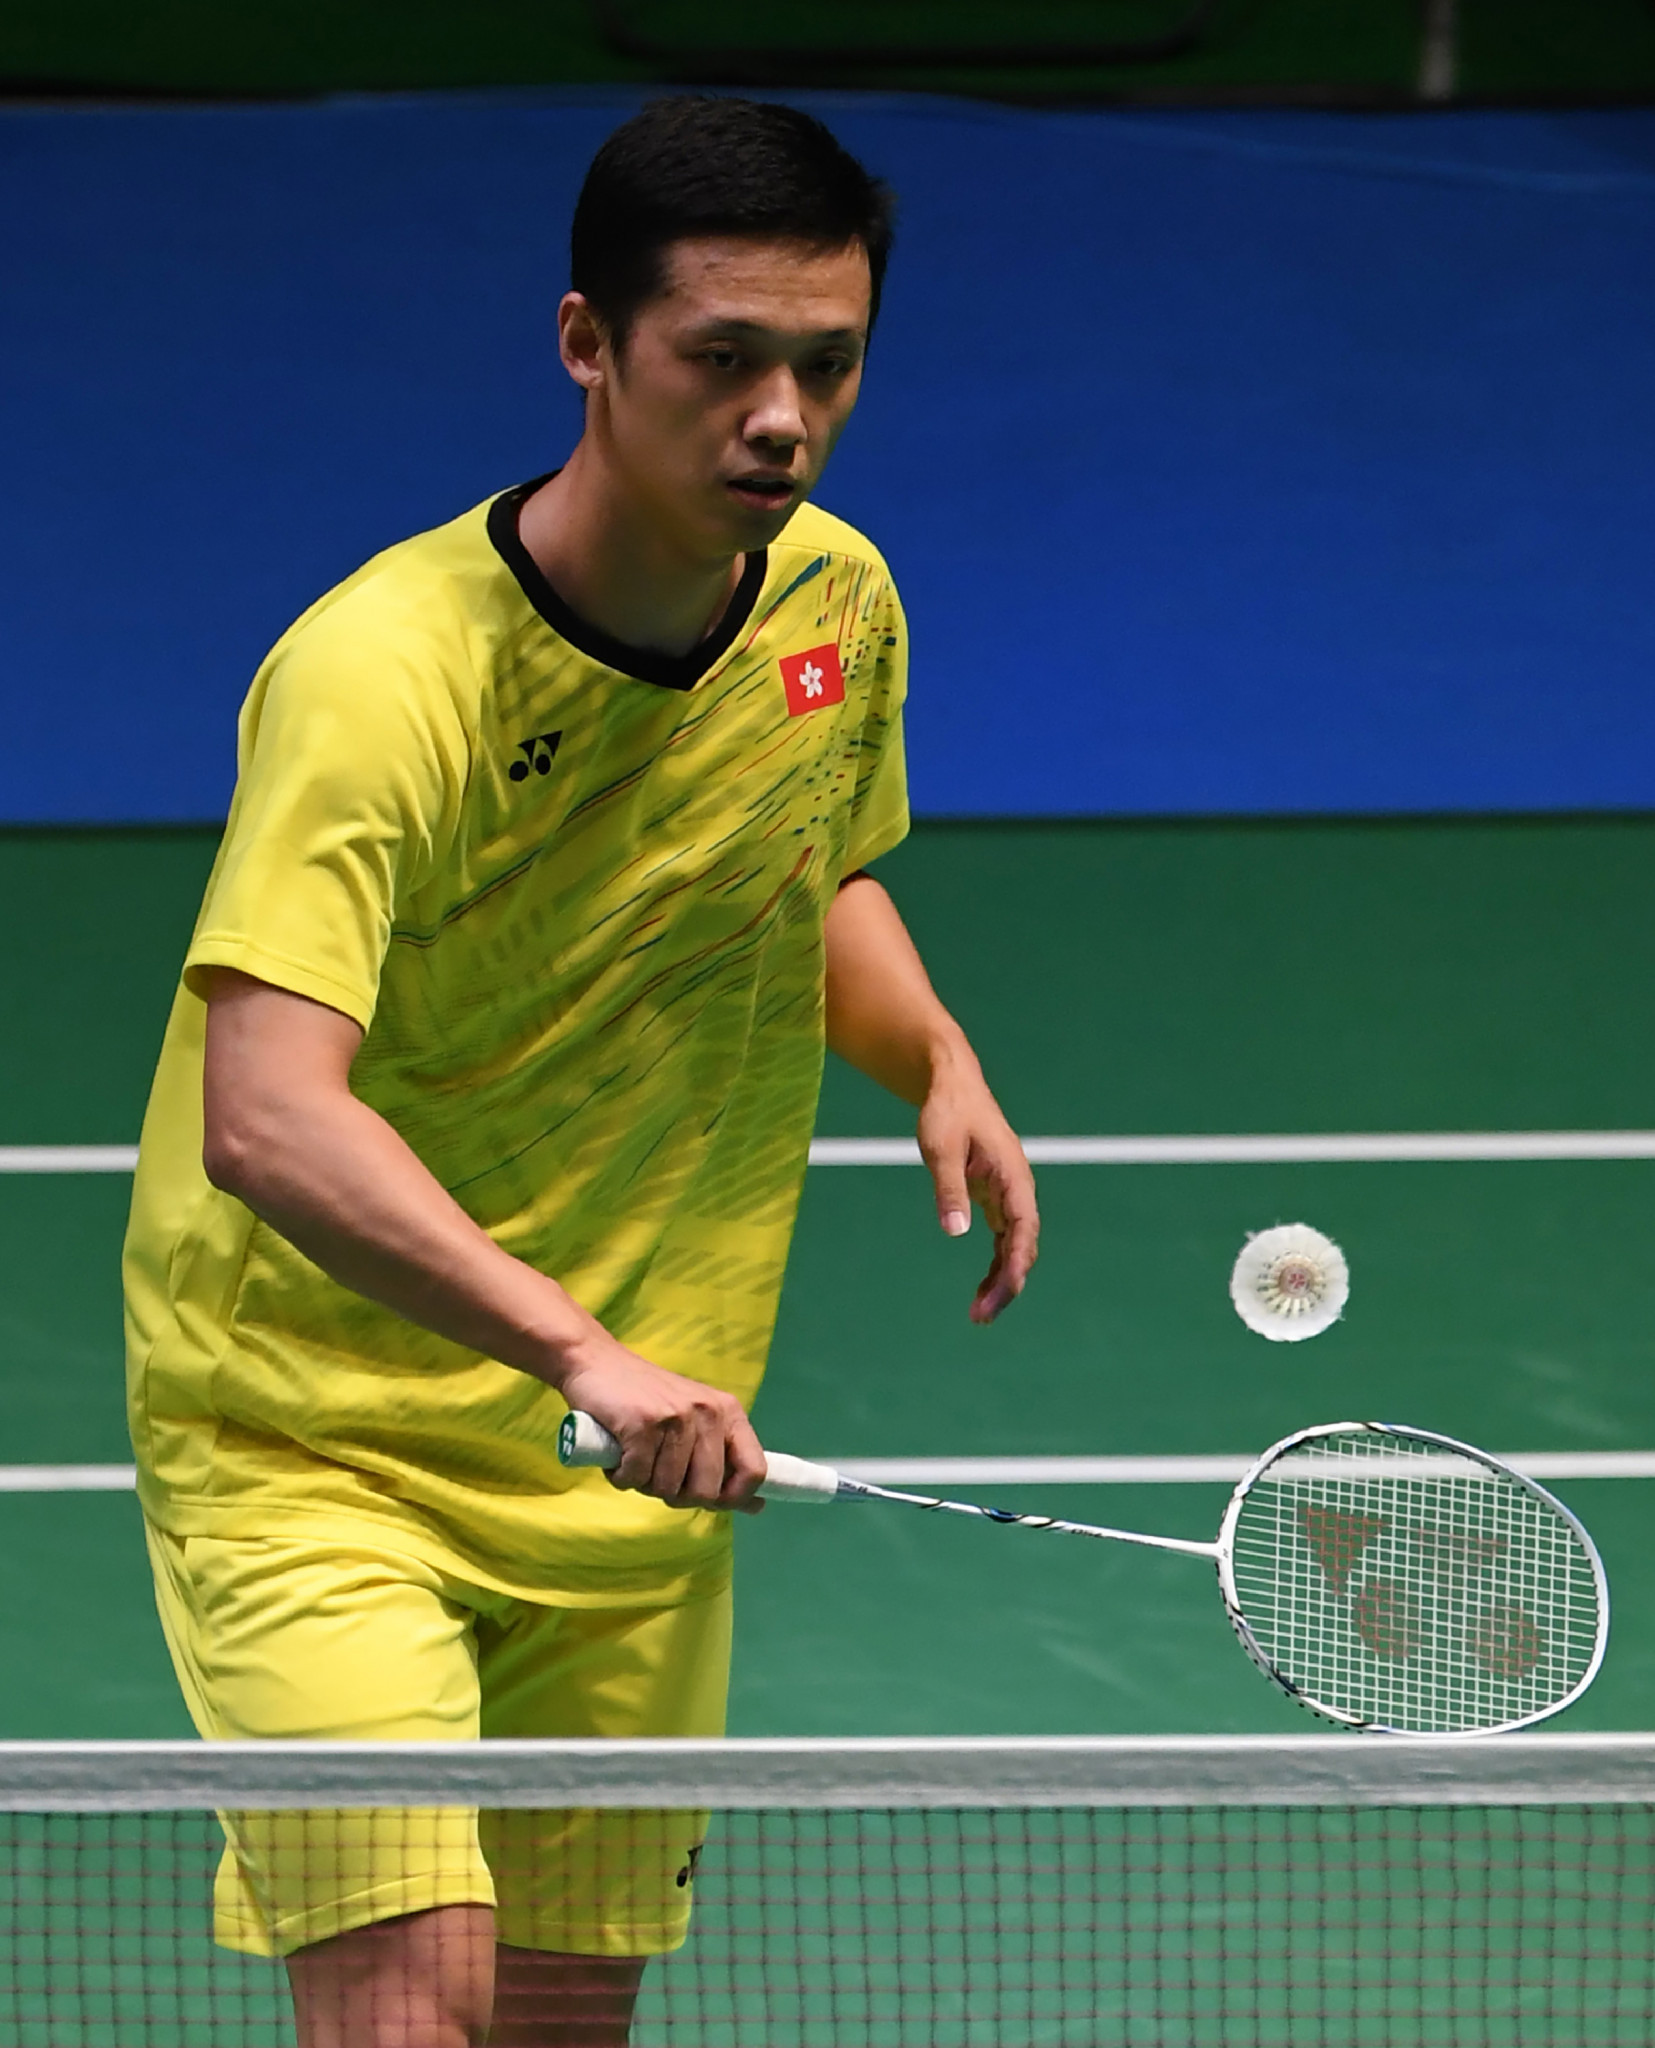 Hong Kong's Hu to face seventh seed Sugiarto in first round of Badminton Asia Championships